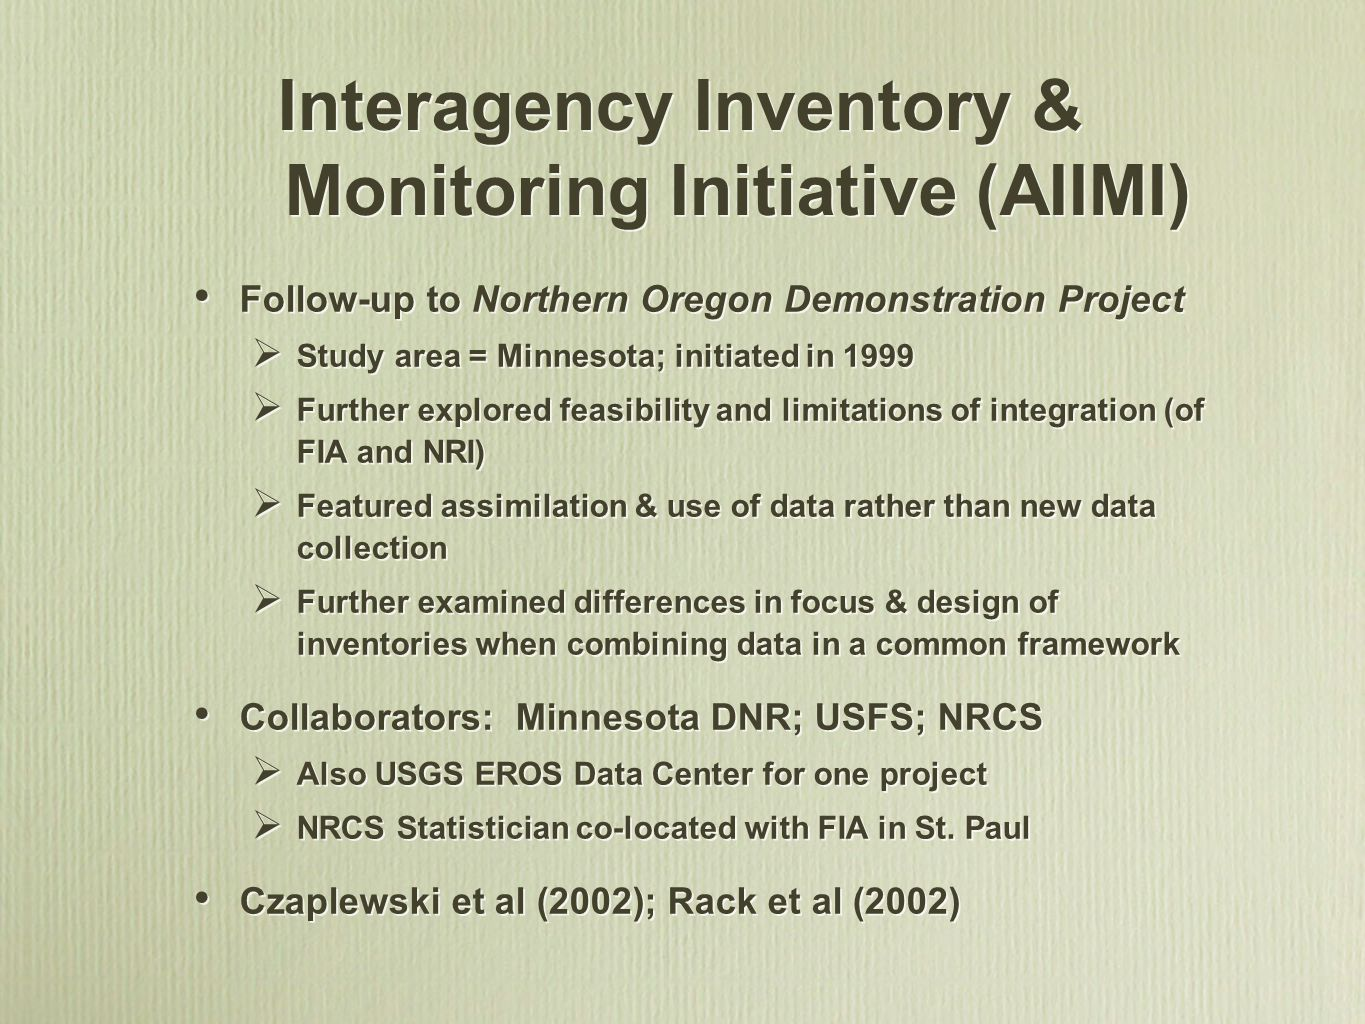 Interagency Inventory & Monitoring Initiative (AIIMI)